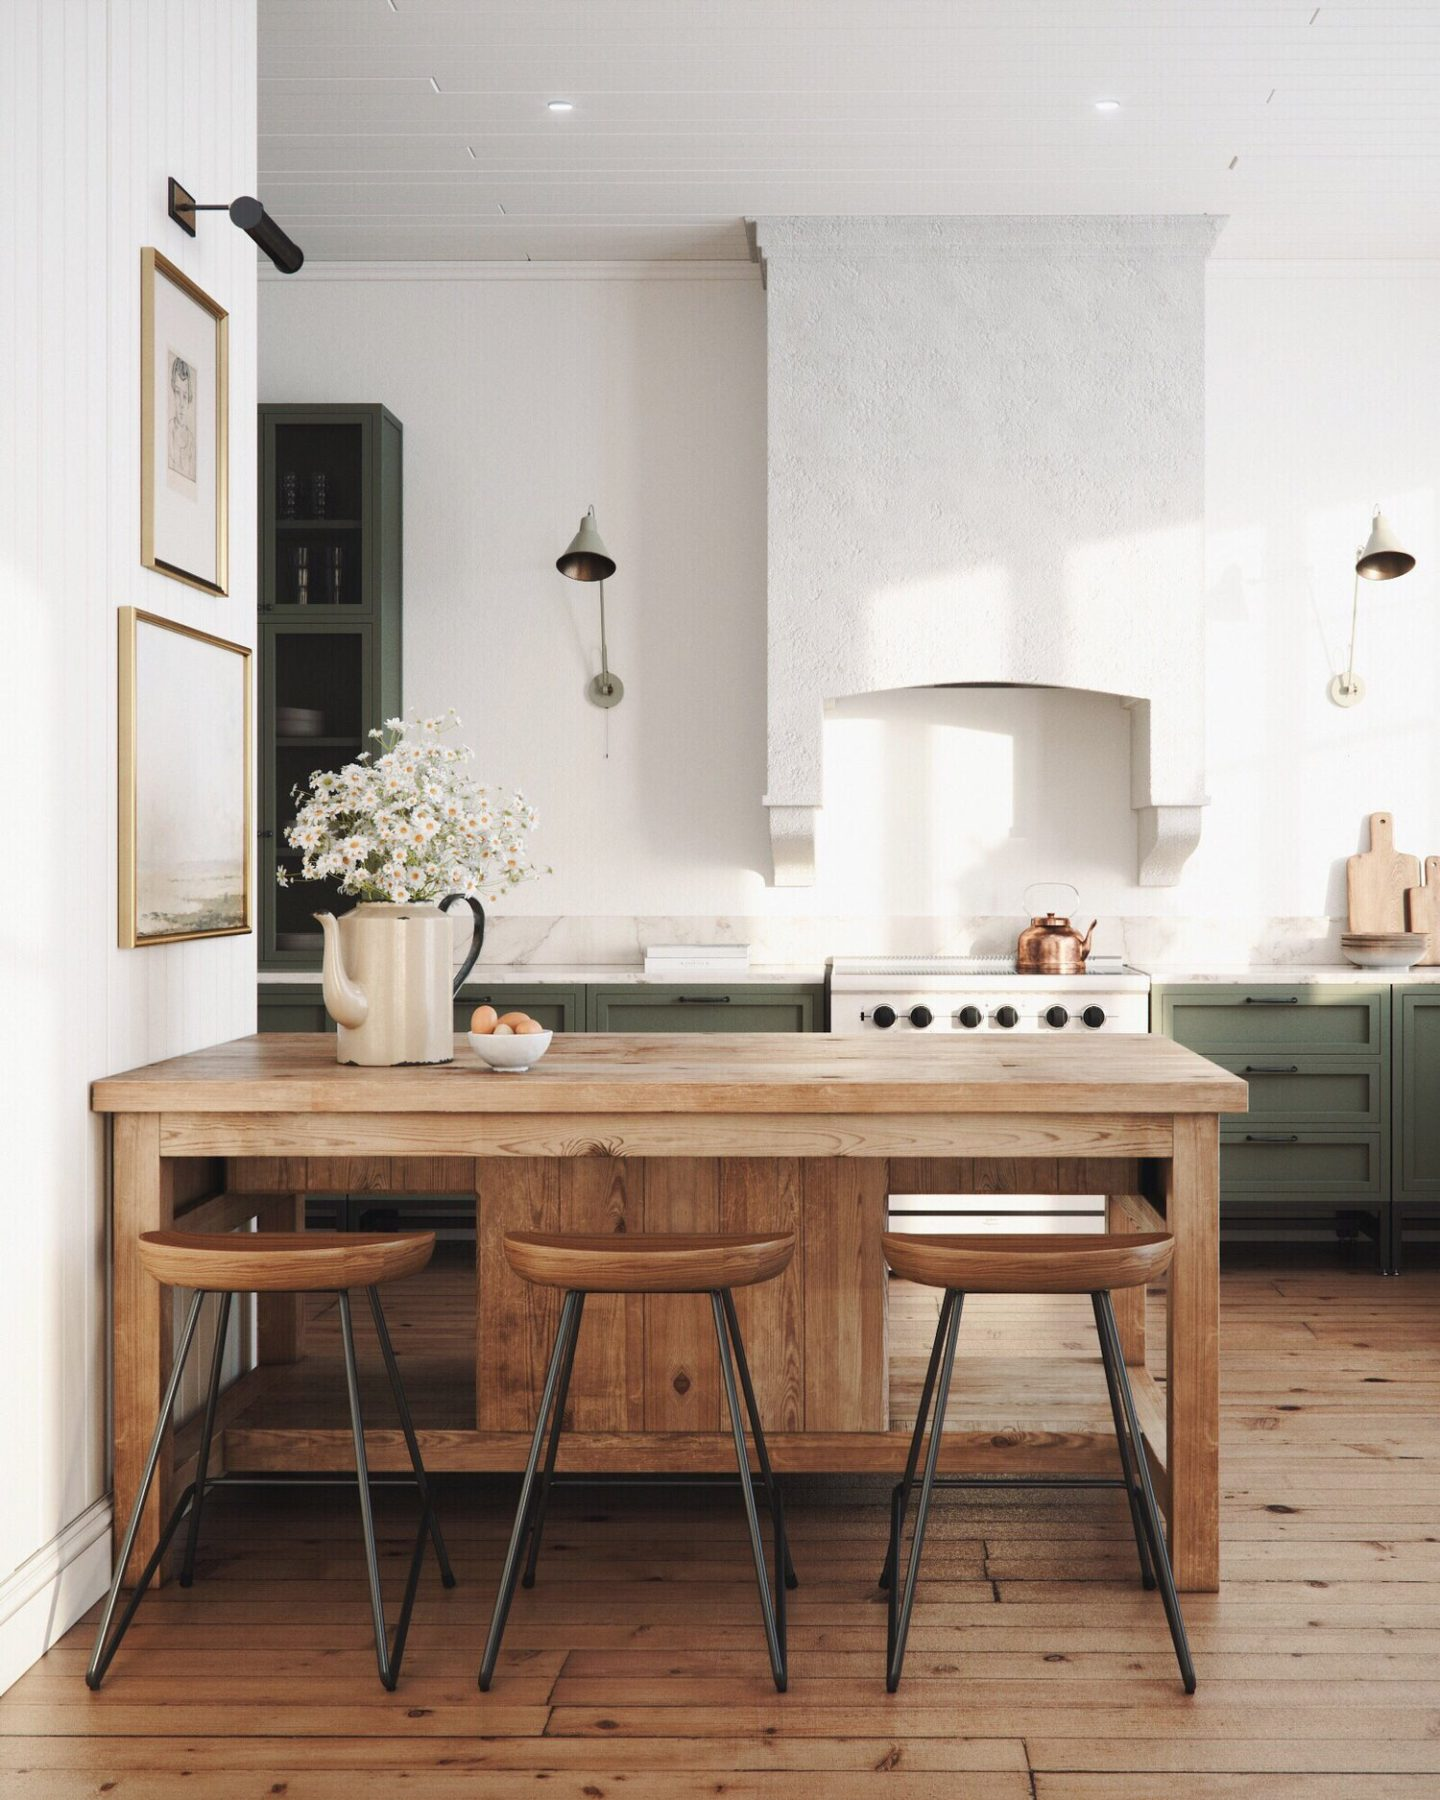 Design and decor trends for 2021: kitchen with rustic wood island and green lower cabinets #home #style #kitchen #design Anthology Interiors